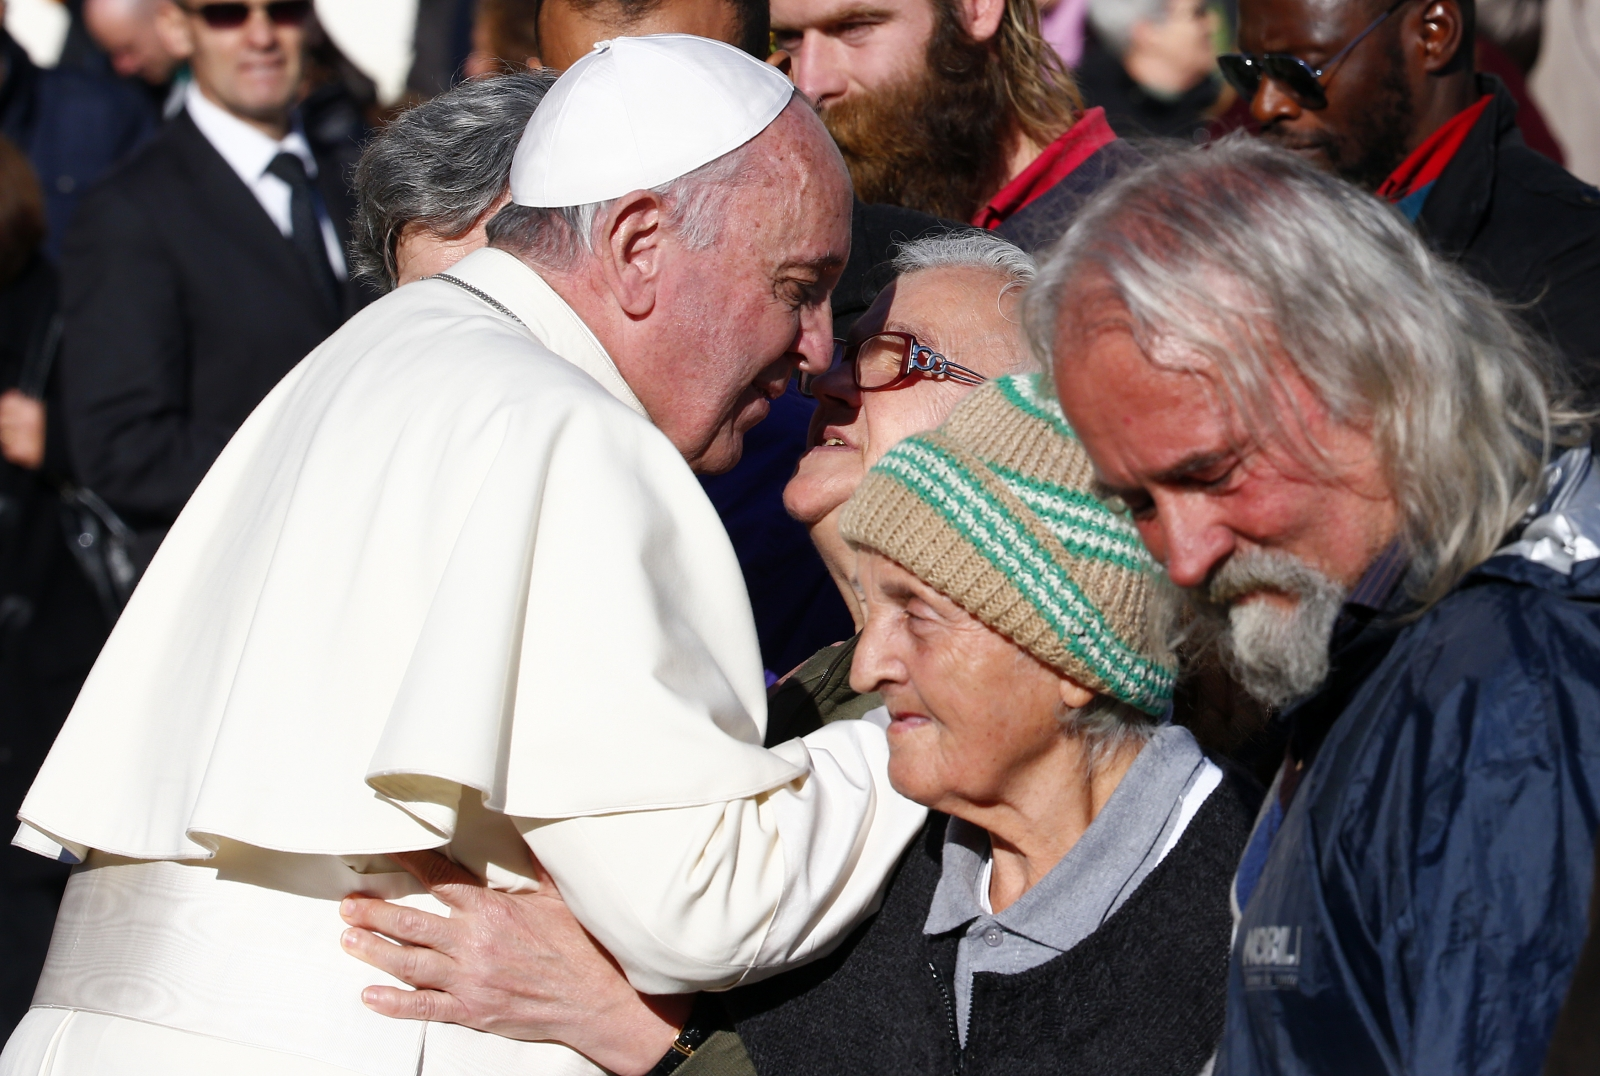 Pope Francis homeless vatican